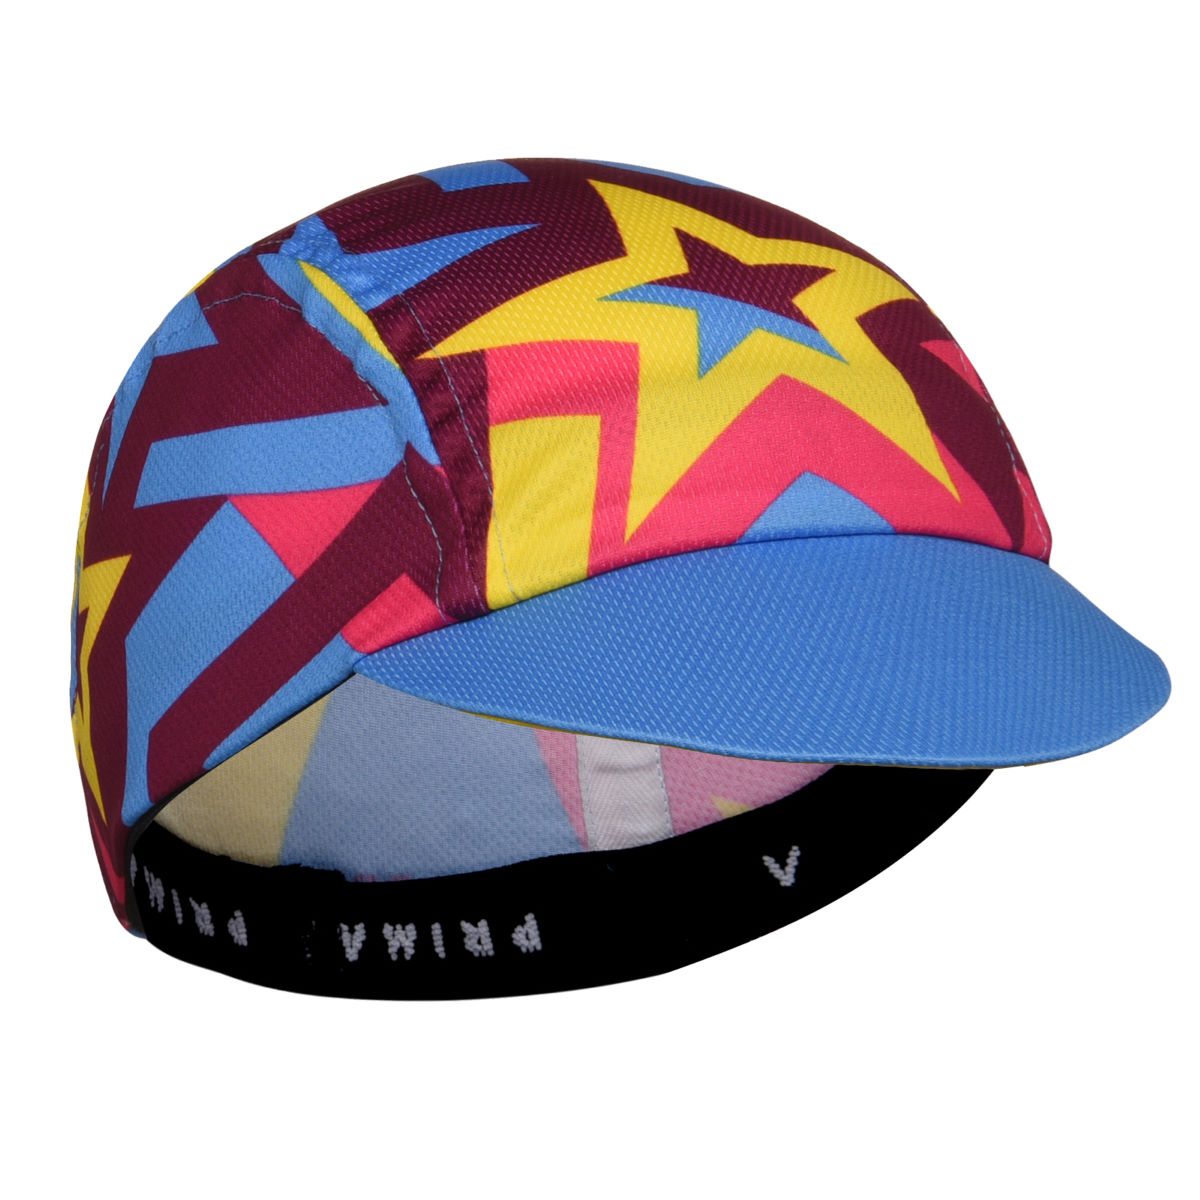 Casquette cycliste Primal Knock Out - Taille unique Multi Coloured